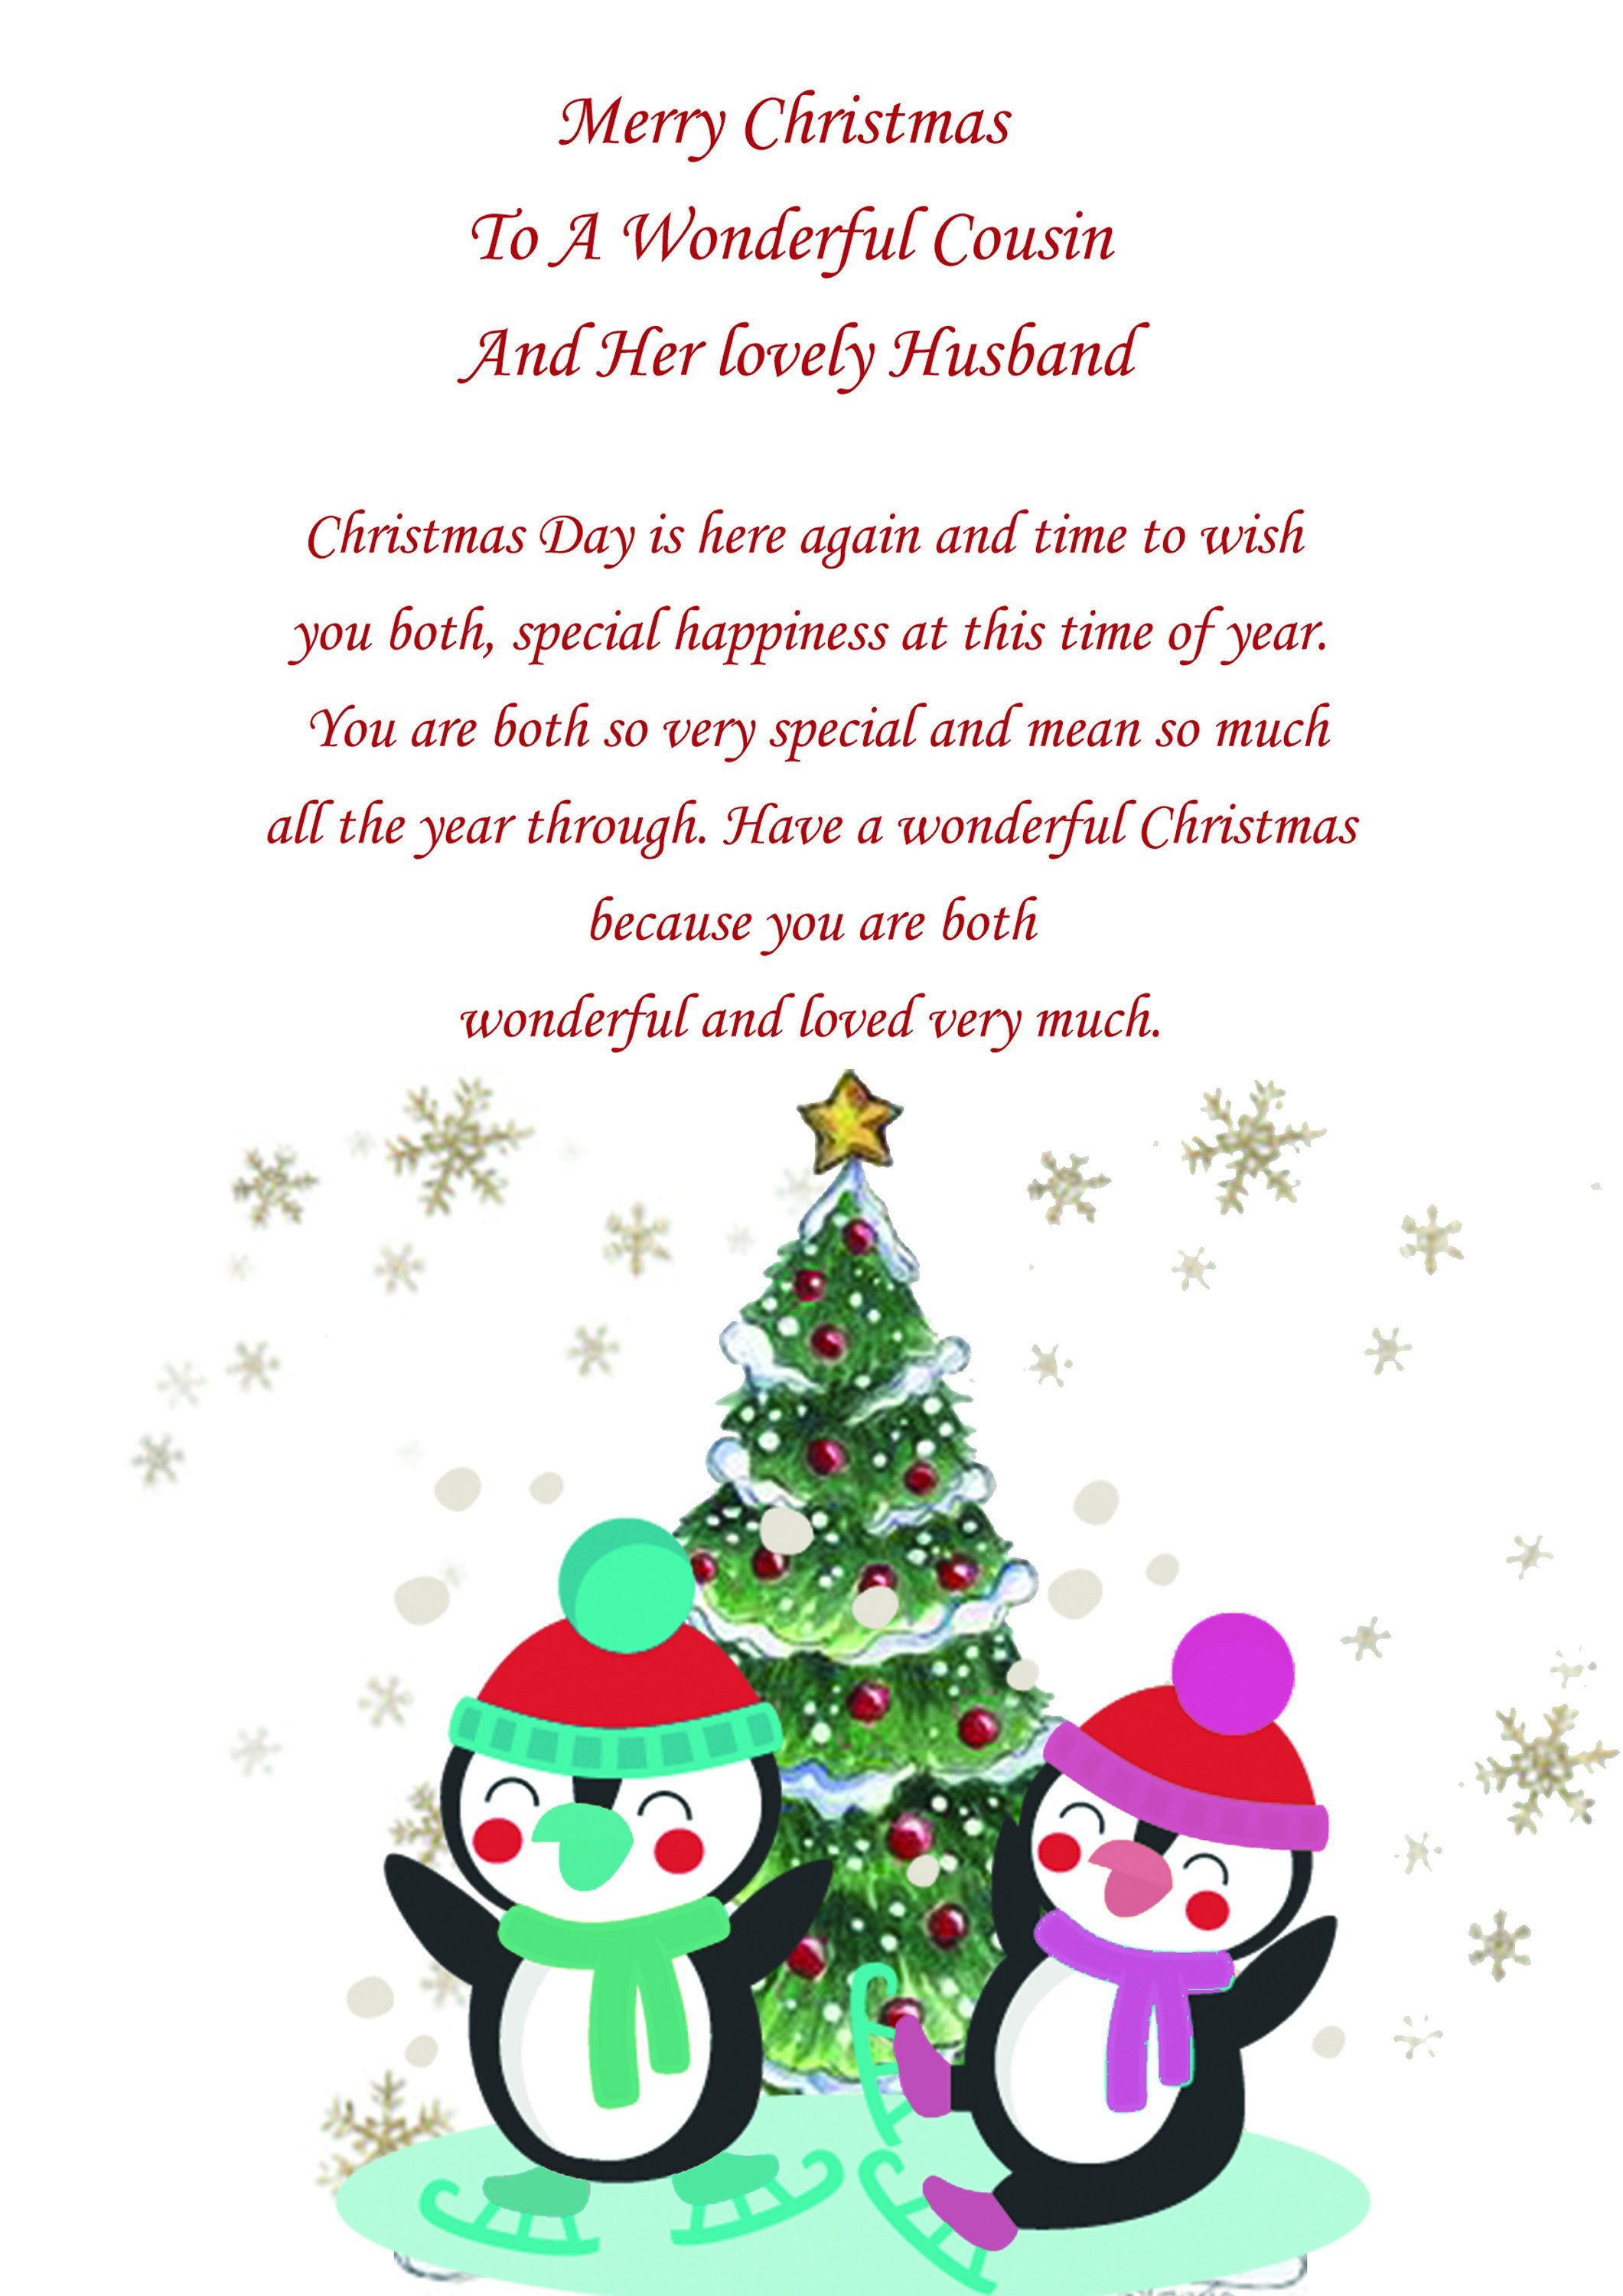 Cousin And Husband Christmas Card Cute | Etsy